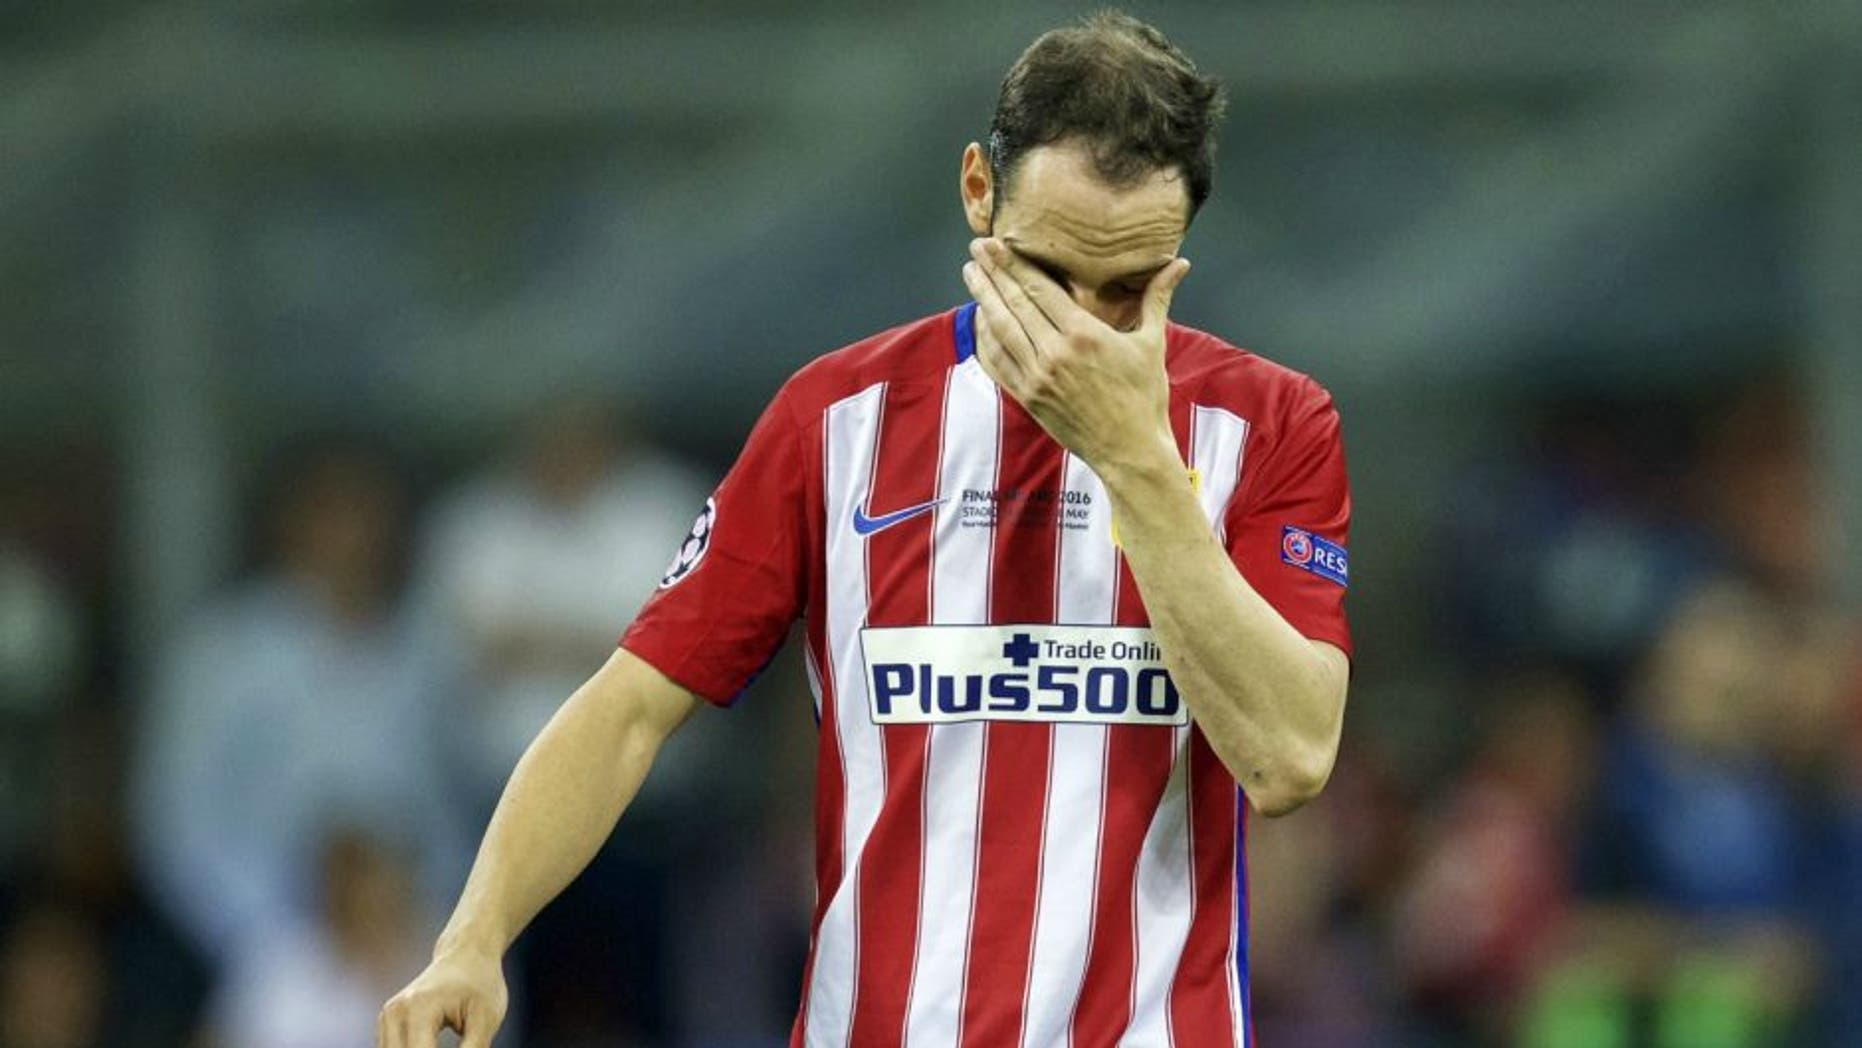 Juanfran of Club Atletico de Madrid during the UEFA Champions League final match between Real Madrid and Atletico Madrid on May 28, 2016 at the Giuseppe Meazza San Siro stadium in Milan, Italy.(Photo by VI Images via Getty Images)